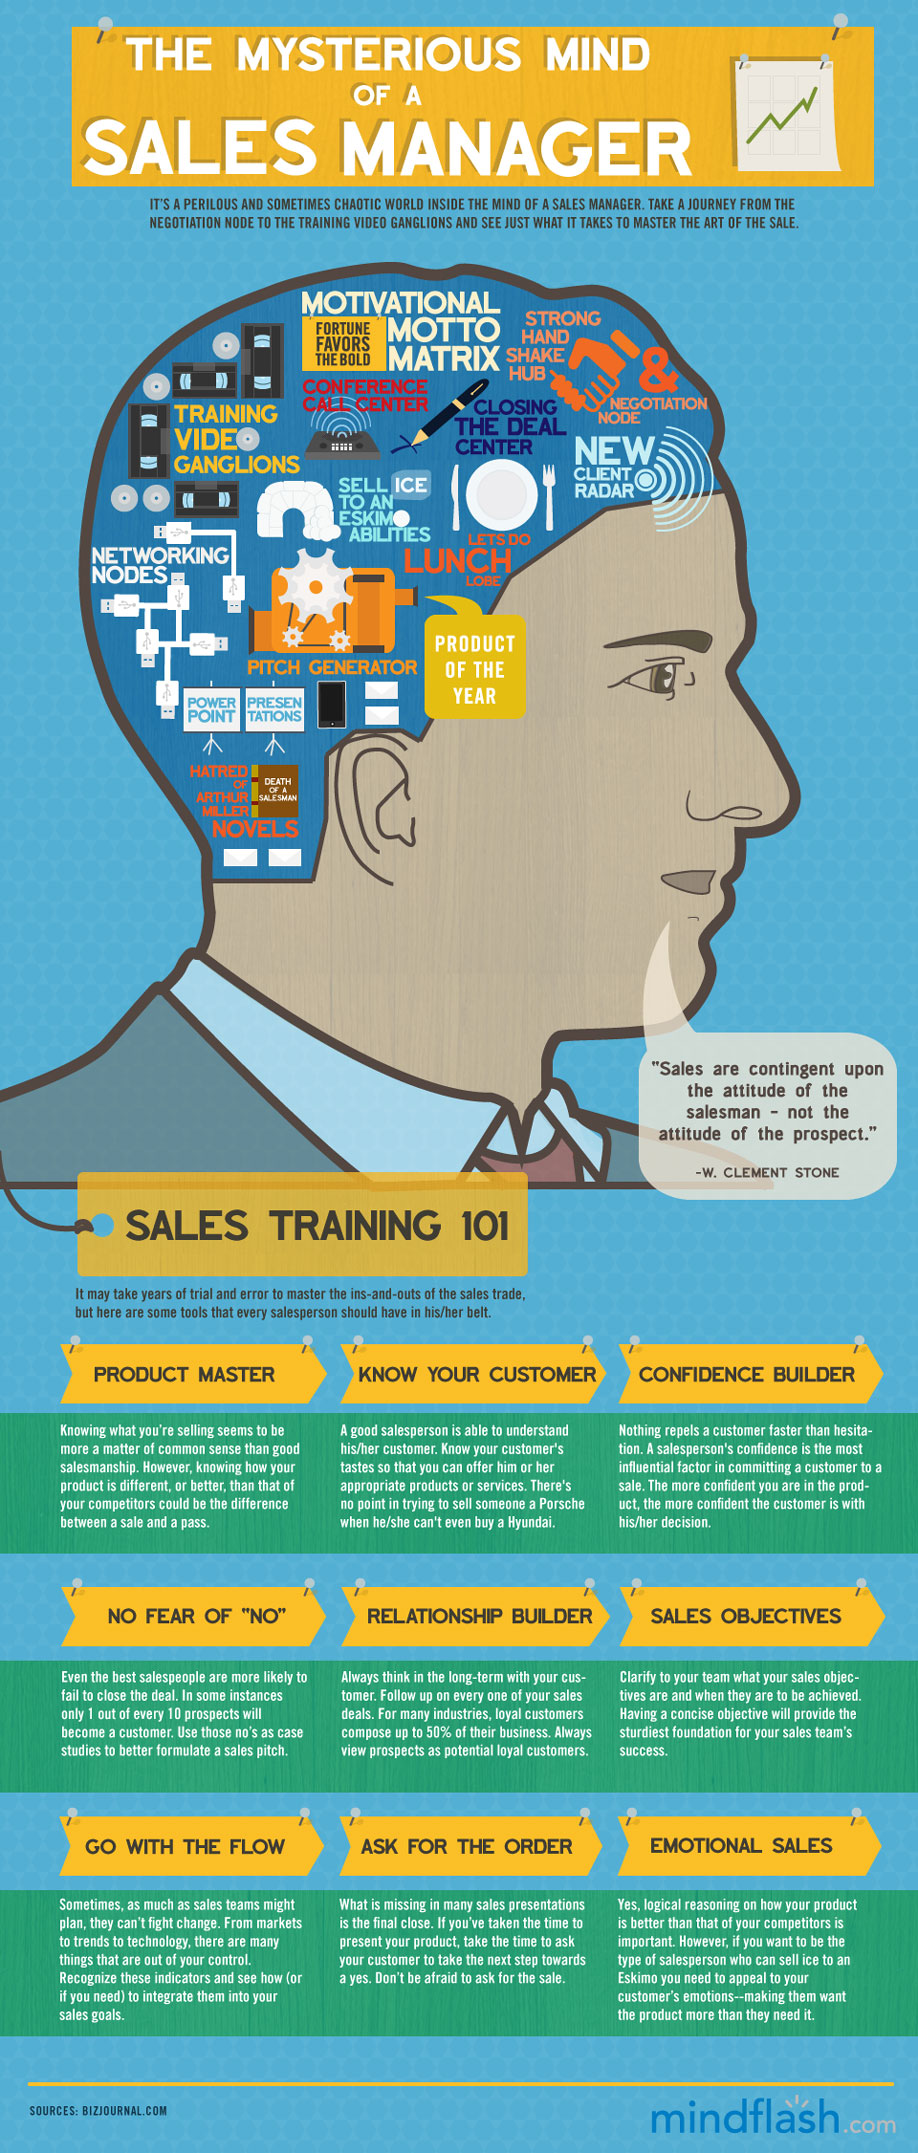 K-27 The misterious mind of a Sales Manager-infographic